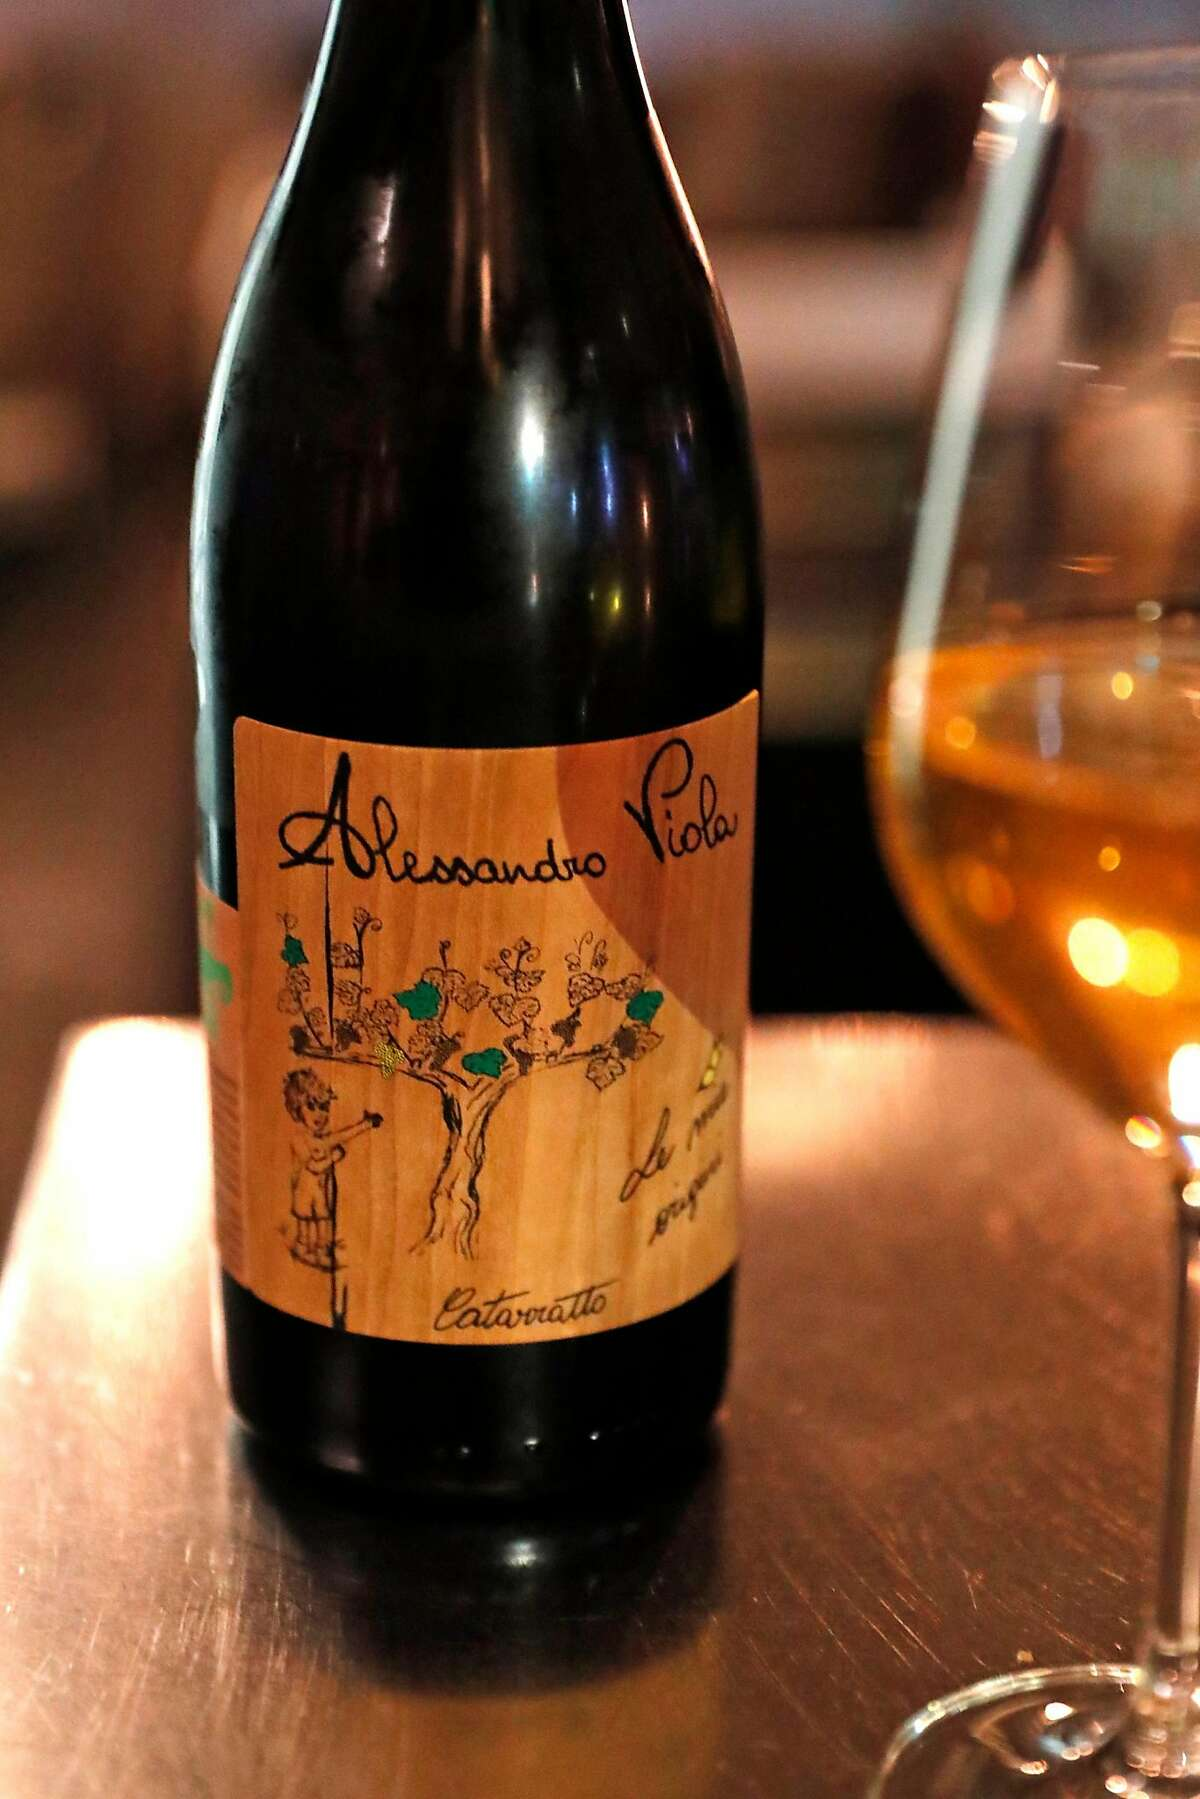 A bottle of Alessandro Viola Catarratto at Lord Stanley in San Francisco, Calif., on Wednesday, February 20, 2019.